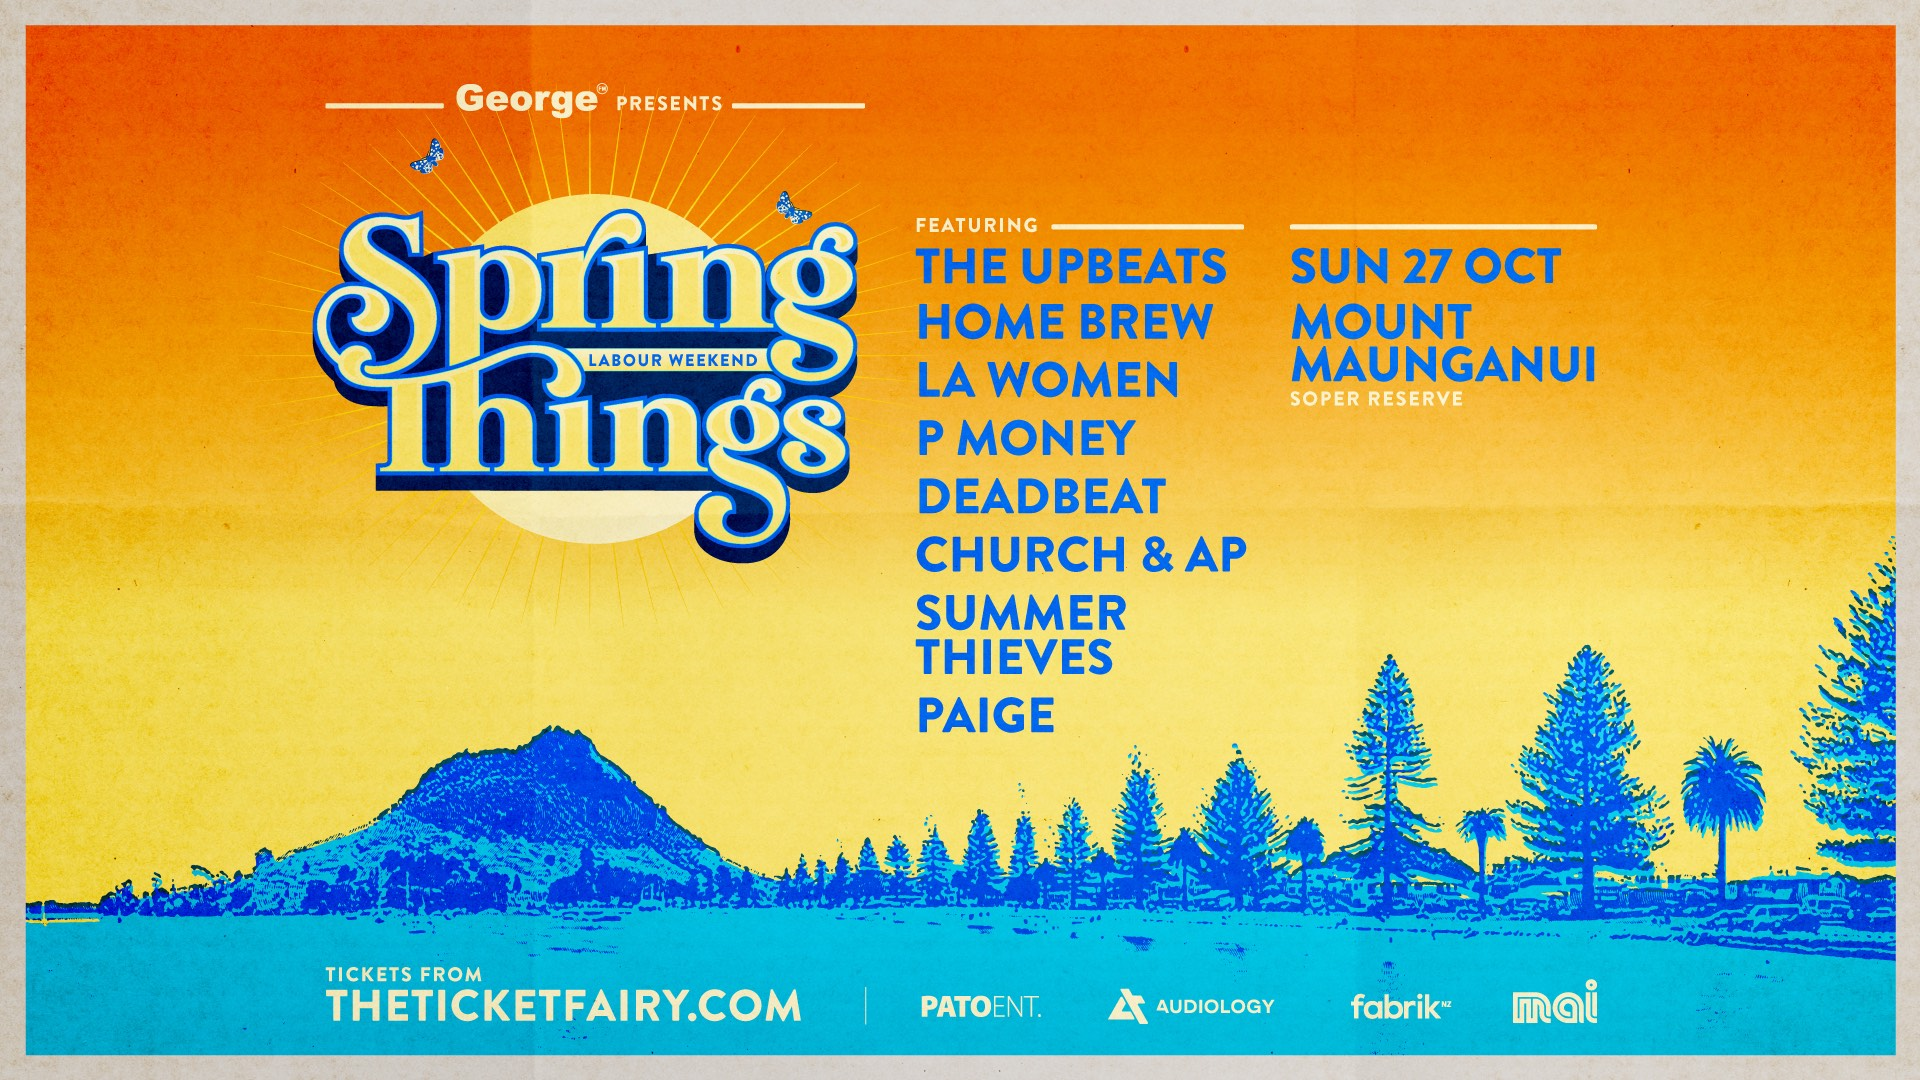 Spring Things: The Upbeats, Home Brew, LA Women & More